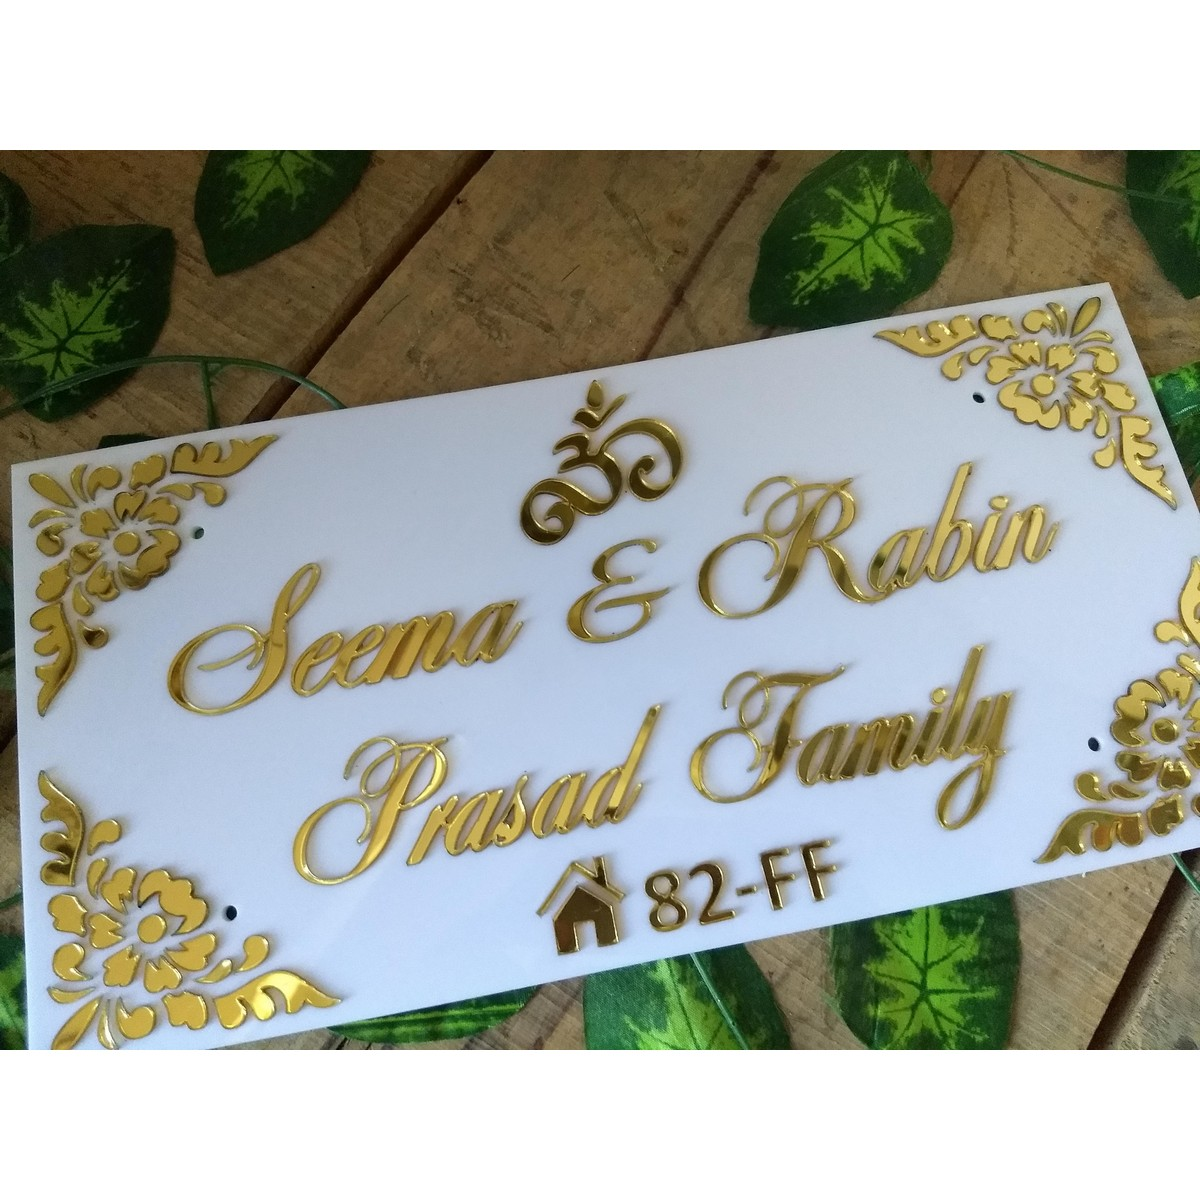 House Name Plate  Acrylic  Premium Collection  House Name Plate  Acrylic  Premium Collection 2